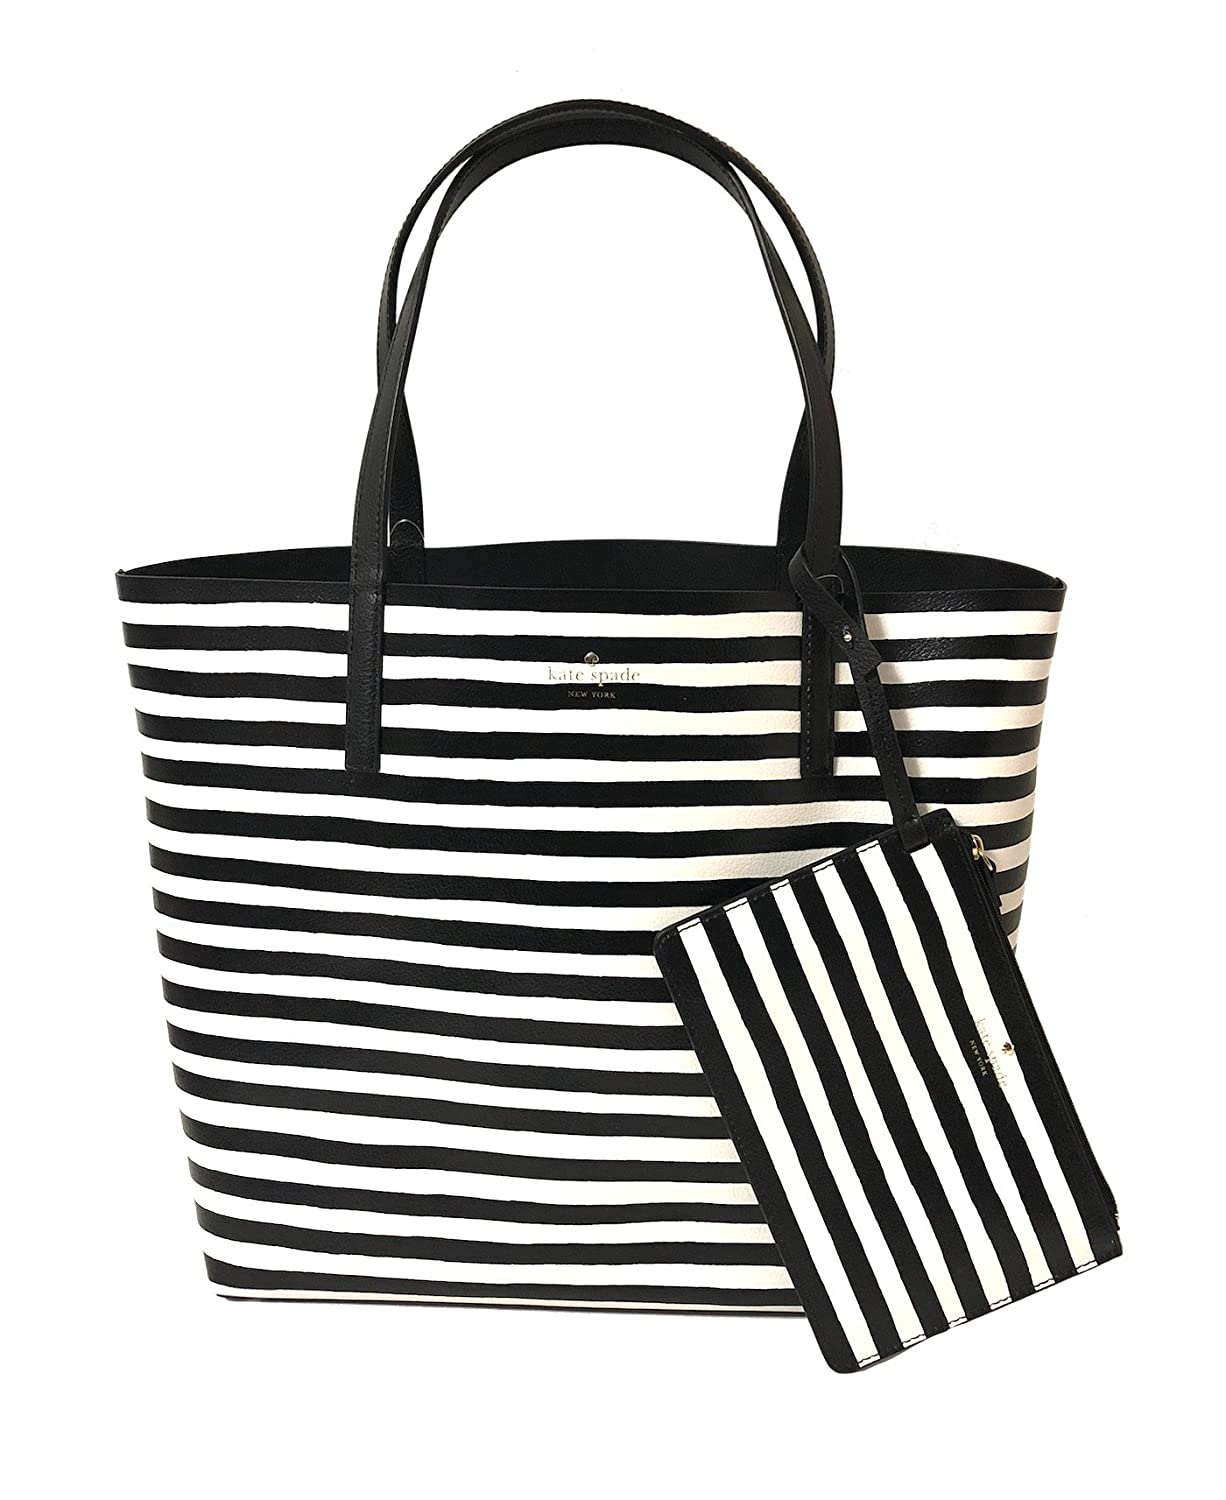 Kate Spade Arch Place Mya Reversible Leather Tote WKRU5504